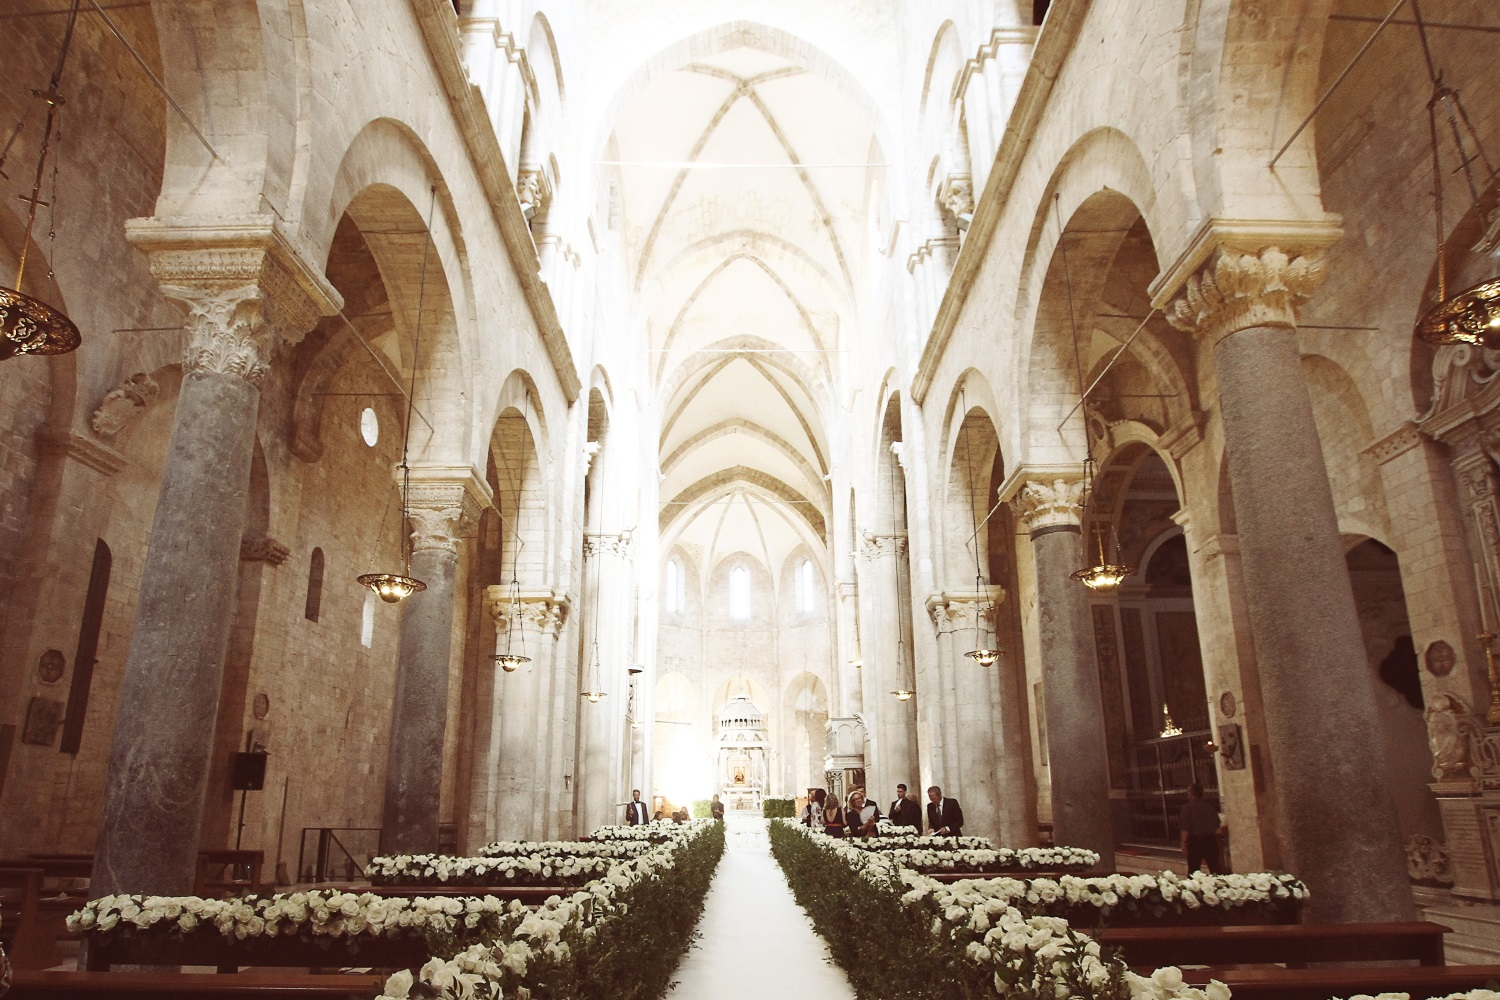 6 Wedding_church_luxury_event_italy_1500